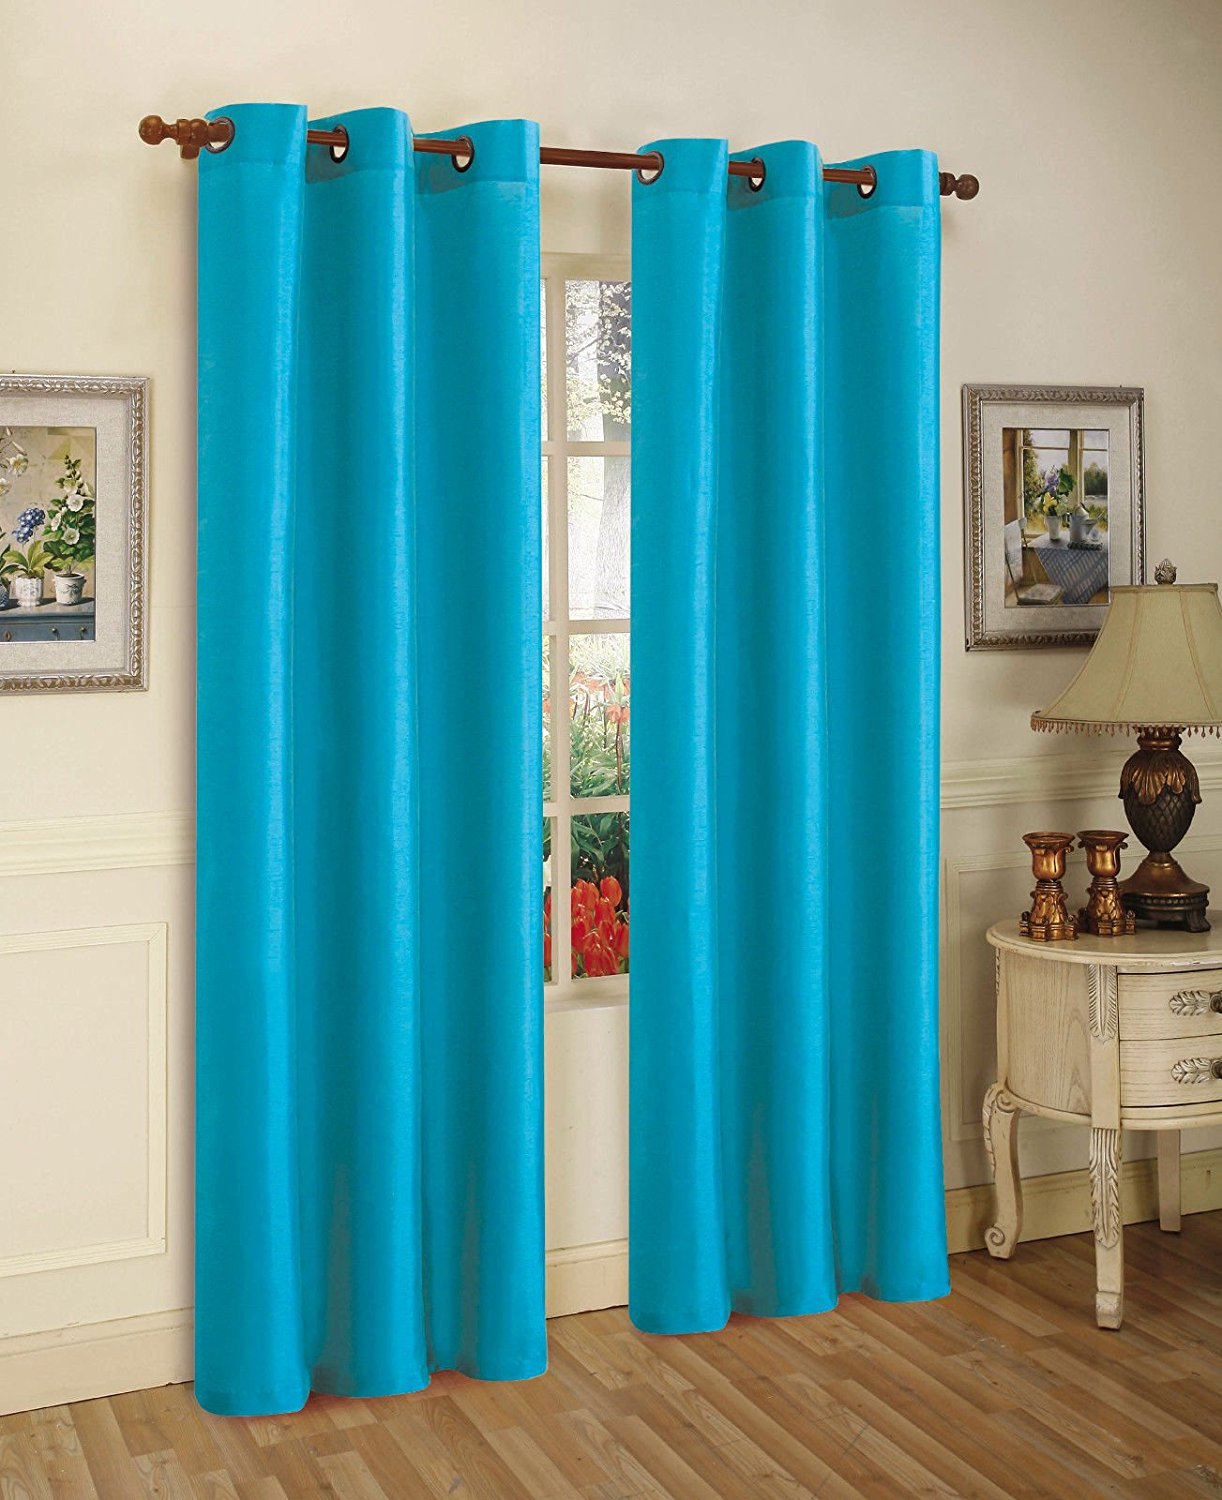 room ideas curtains for simple faadacf curtain living turquoise